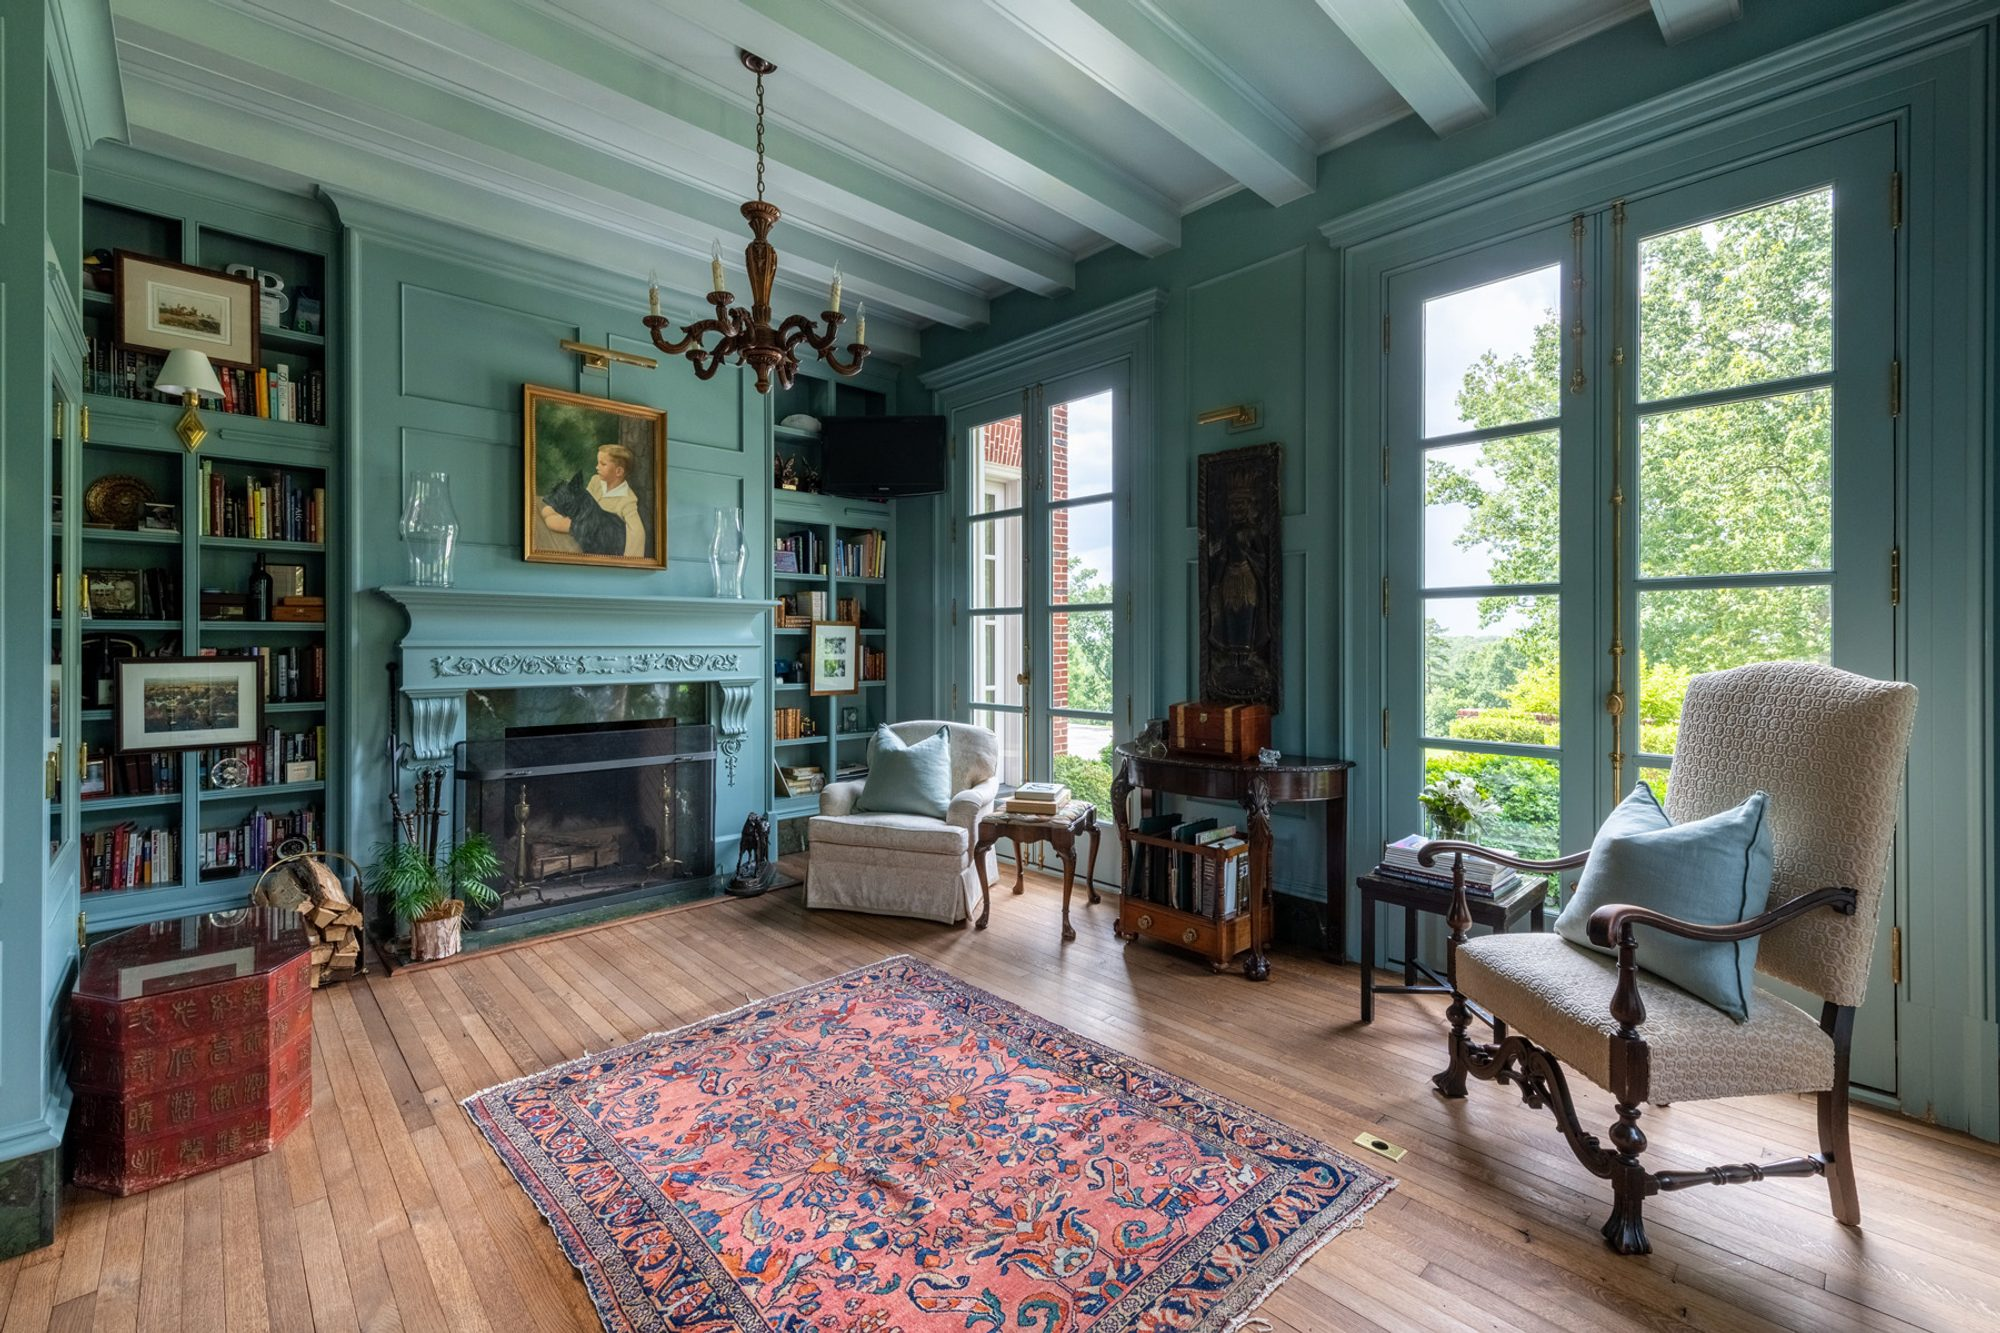 Vintage style home with thin plank hardwood floors and a natural finish.